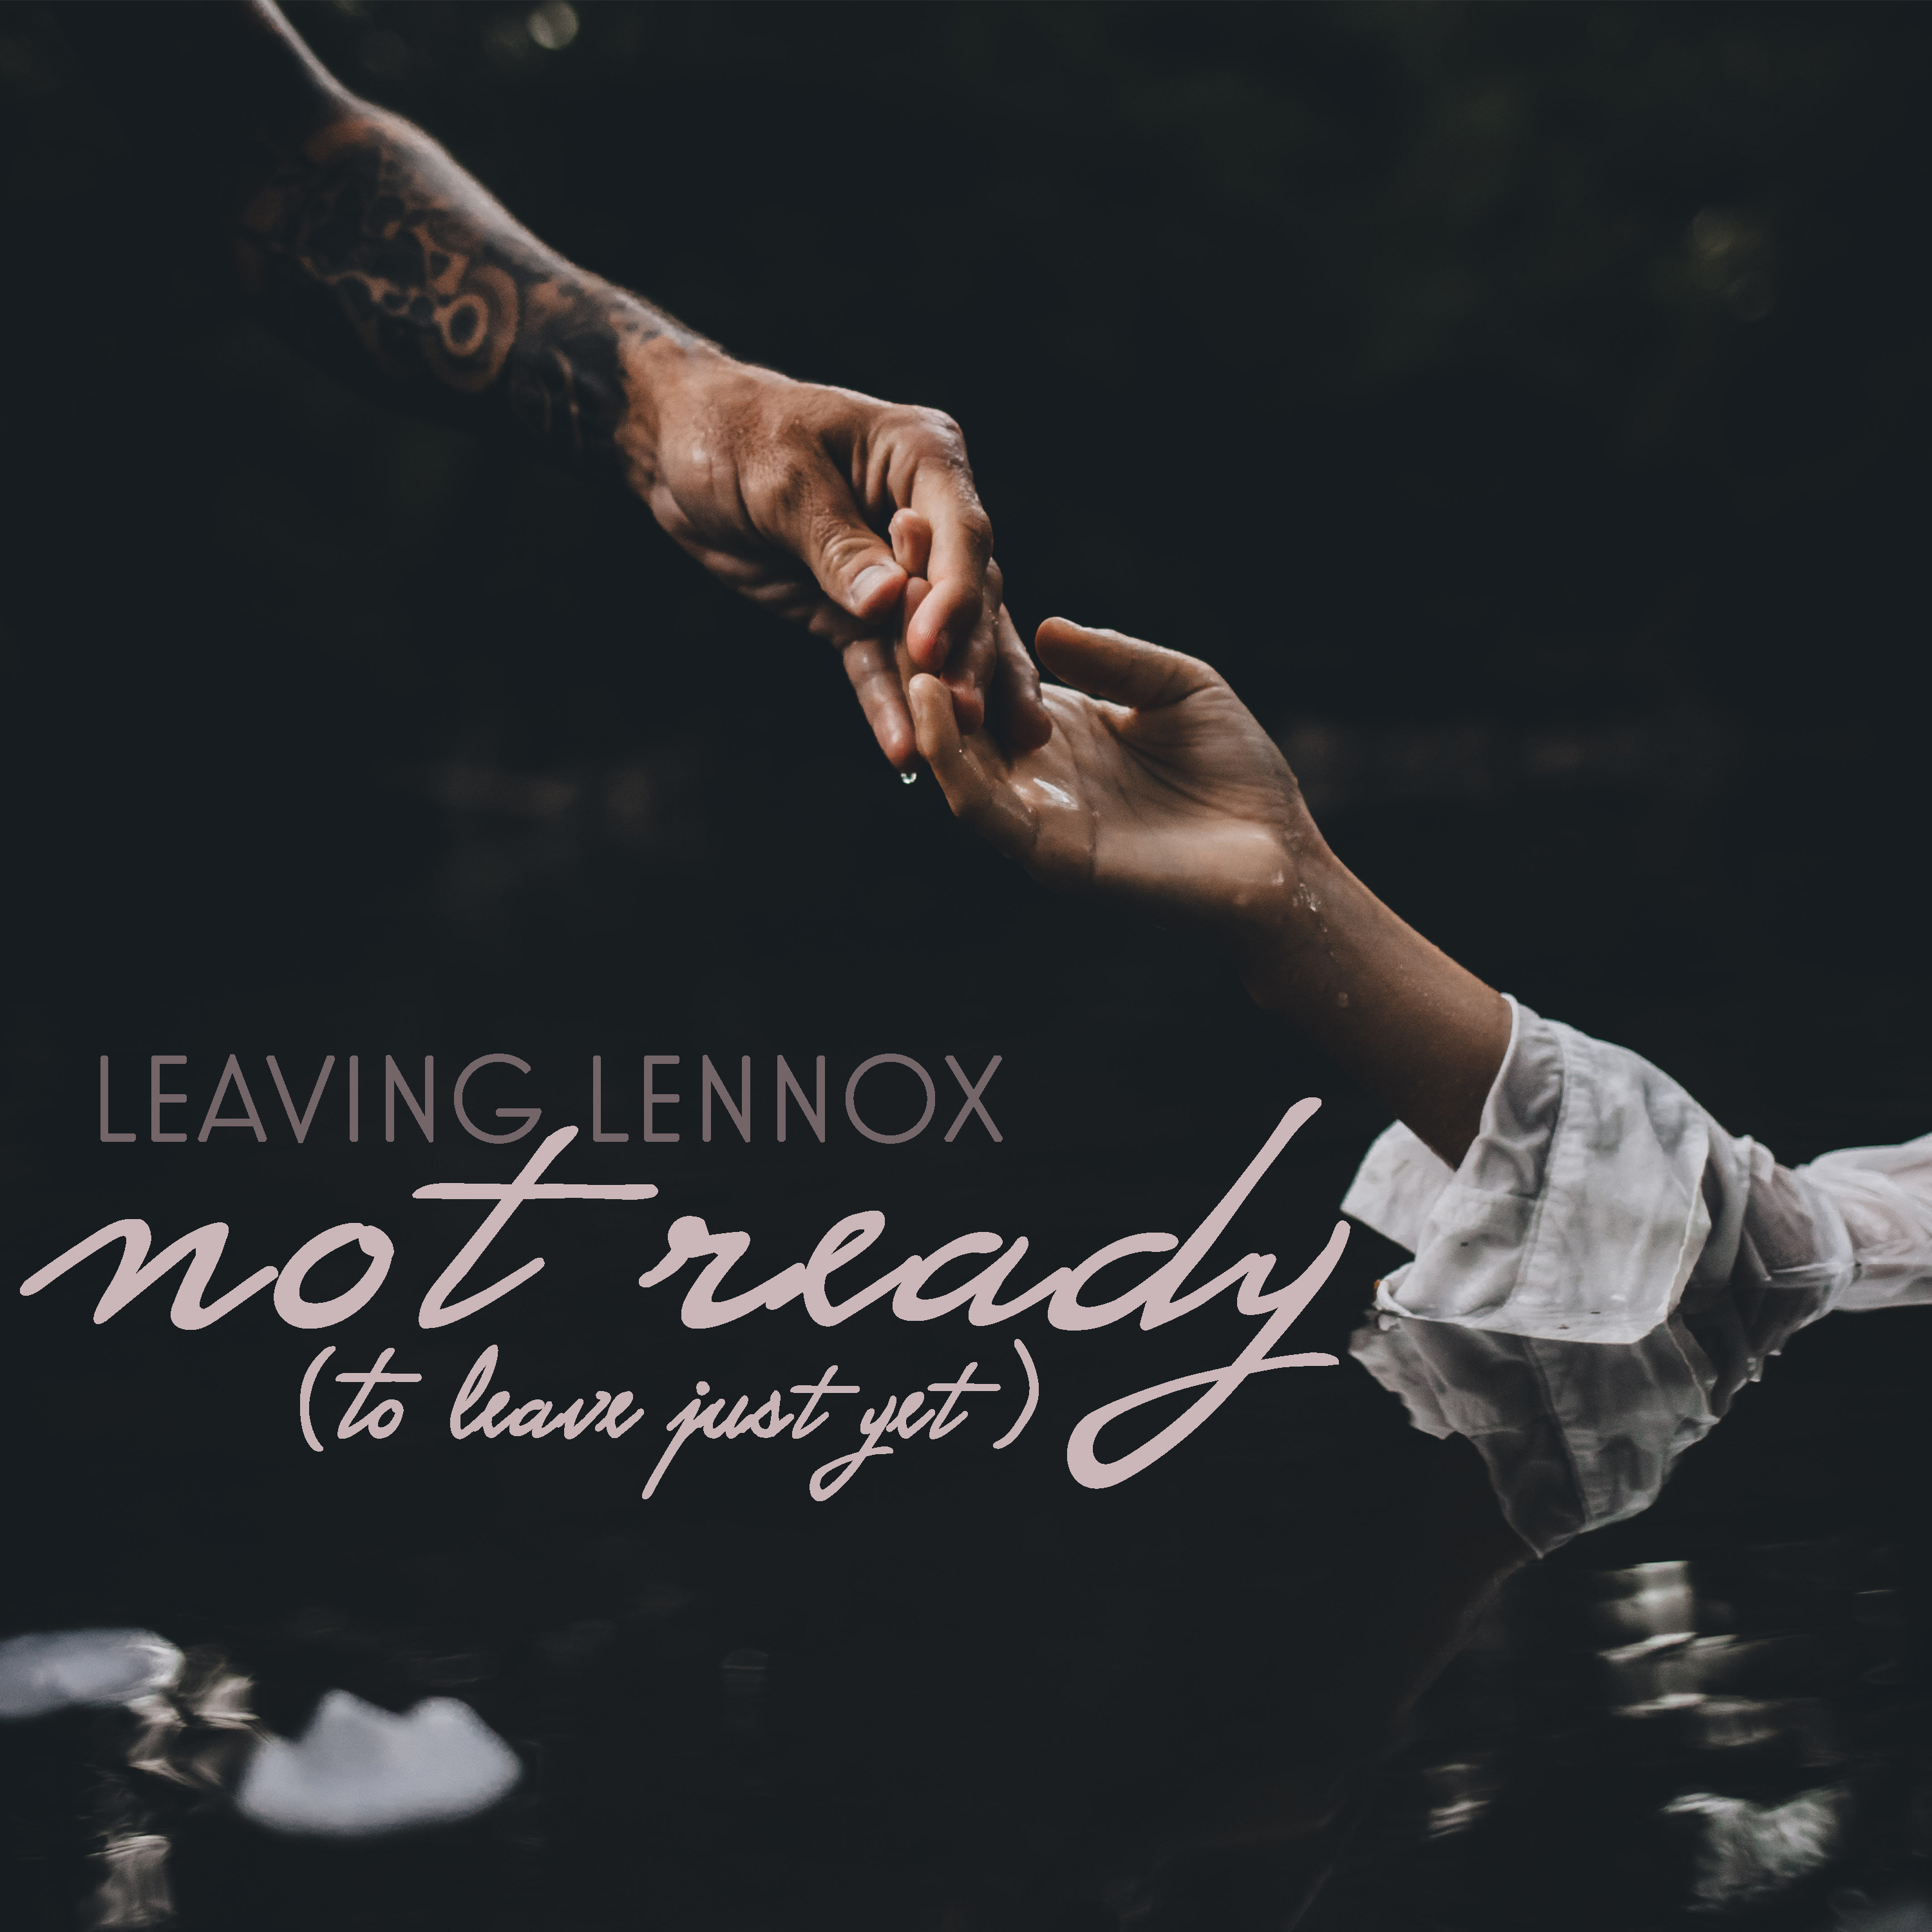 'Leaving Lennox' release their new single on August 7th